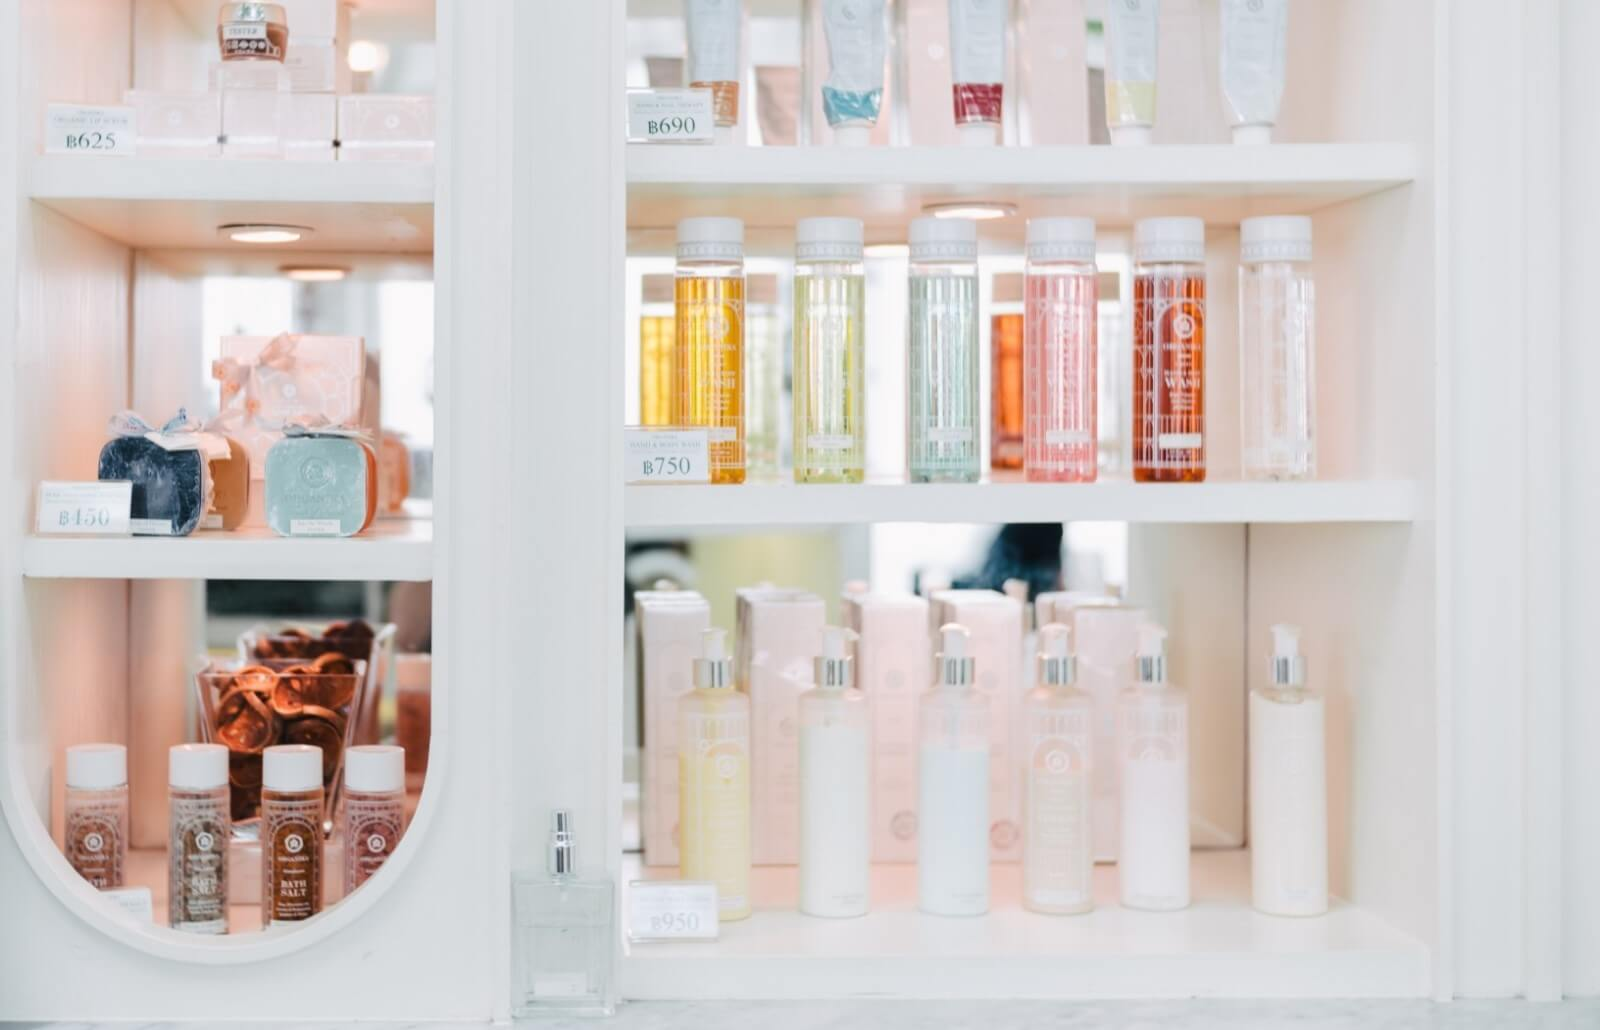 Department Stores vs. Dermatologists: Where You Get Your Skincare Products Matters